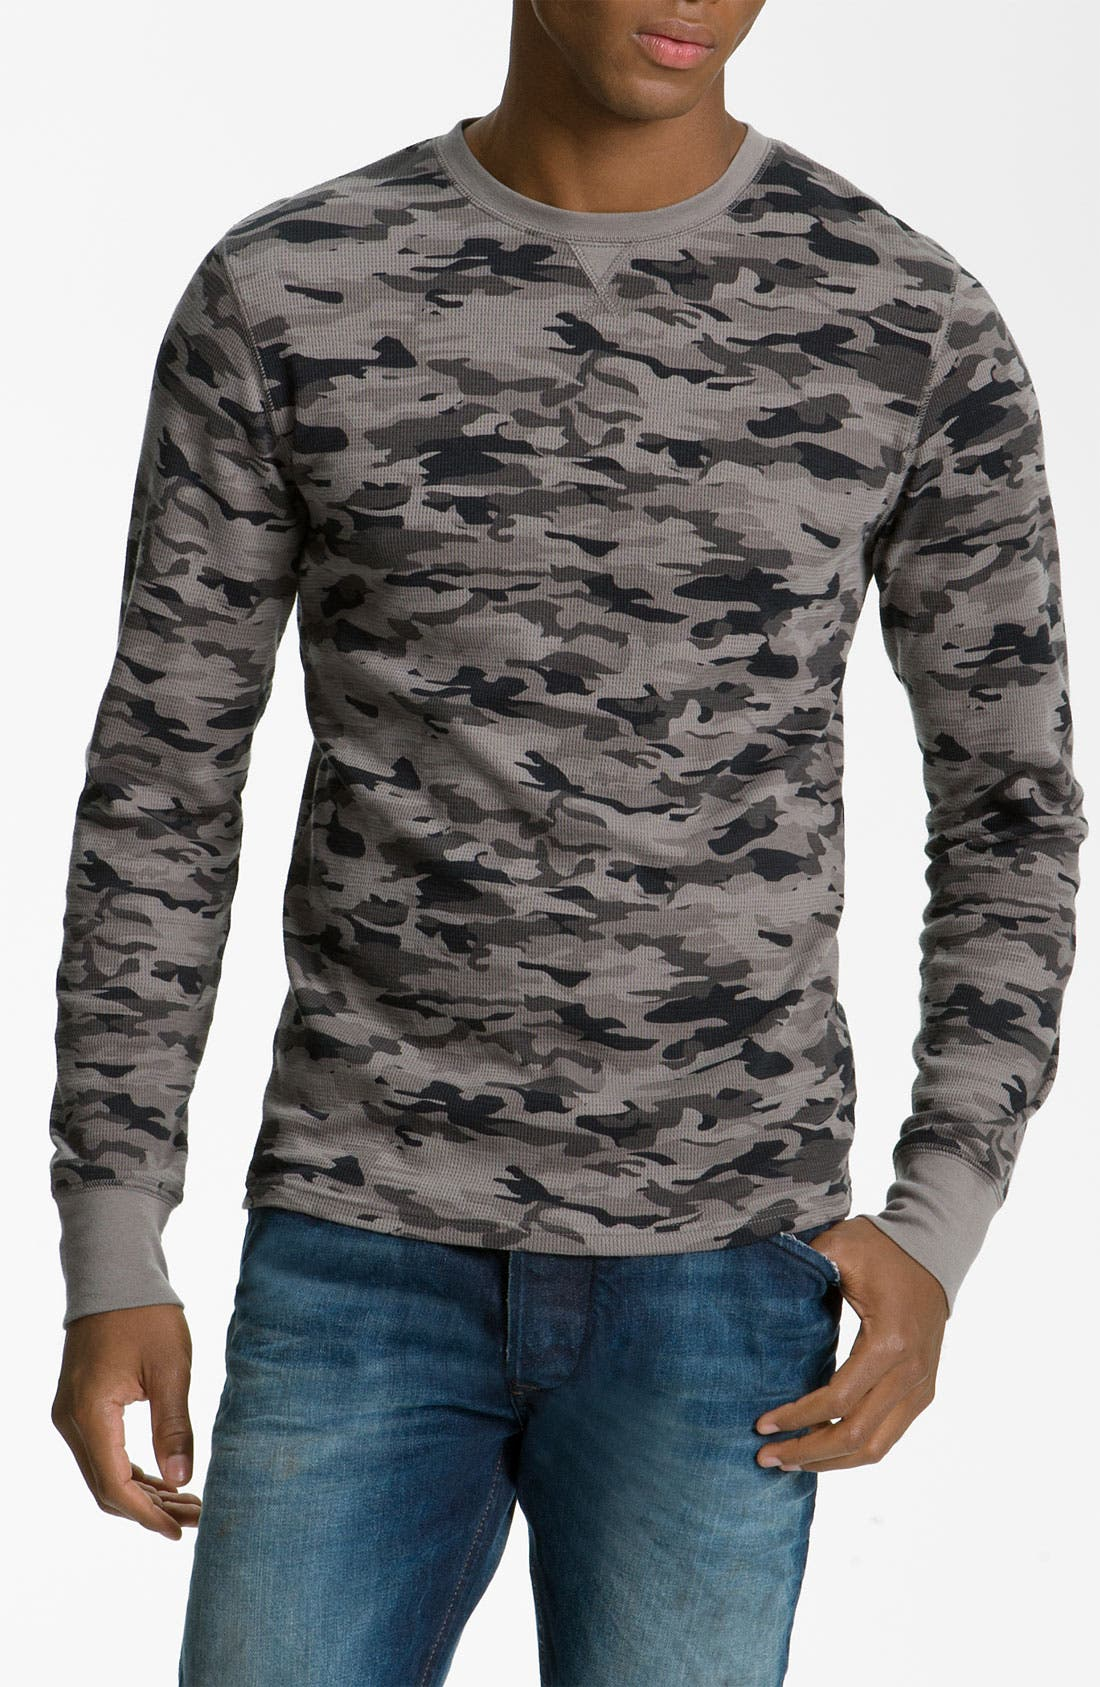 The Rail by Public Opinion Camo Thermal Shirt,                             Main thumbnail 1, color,                             Tonal Black Camo